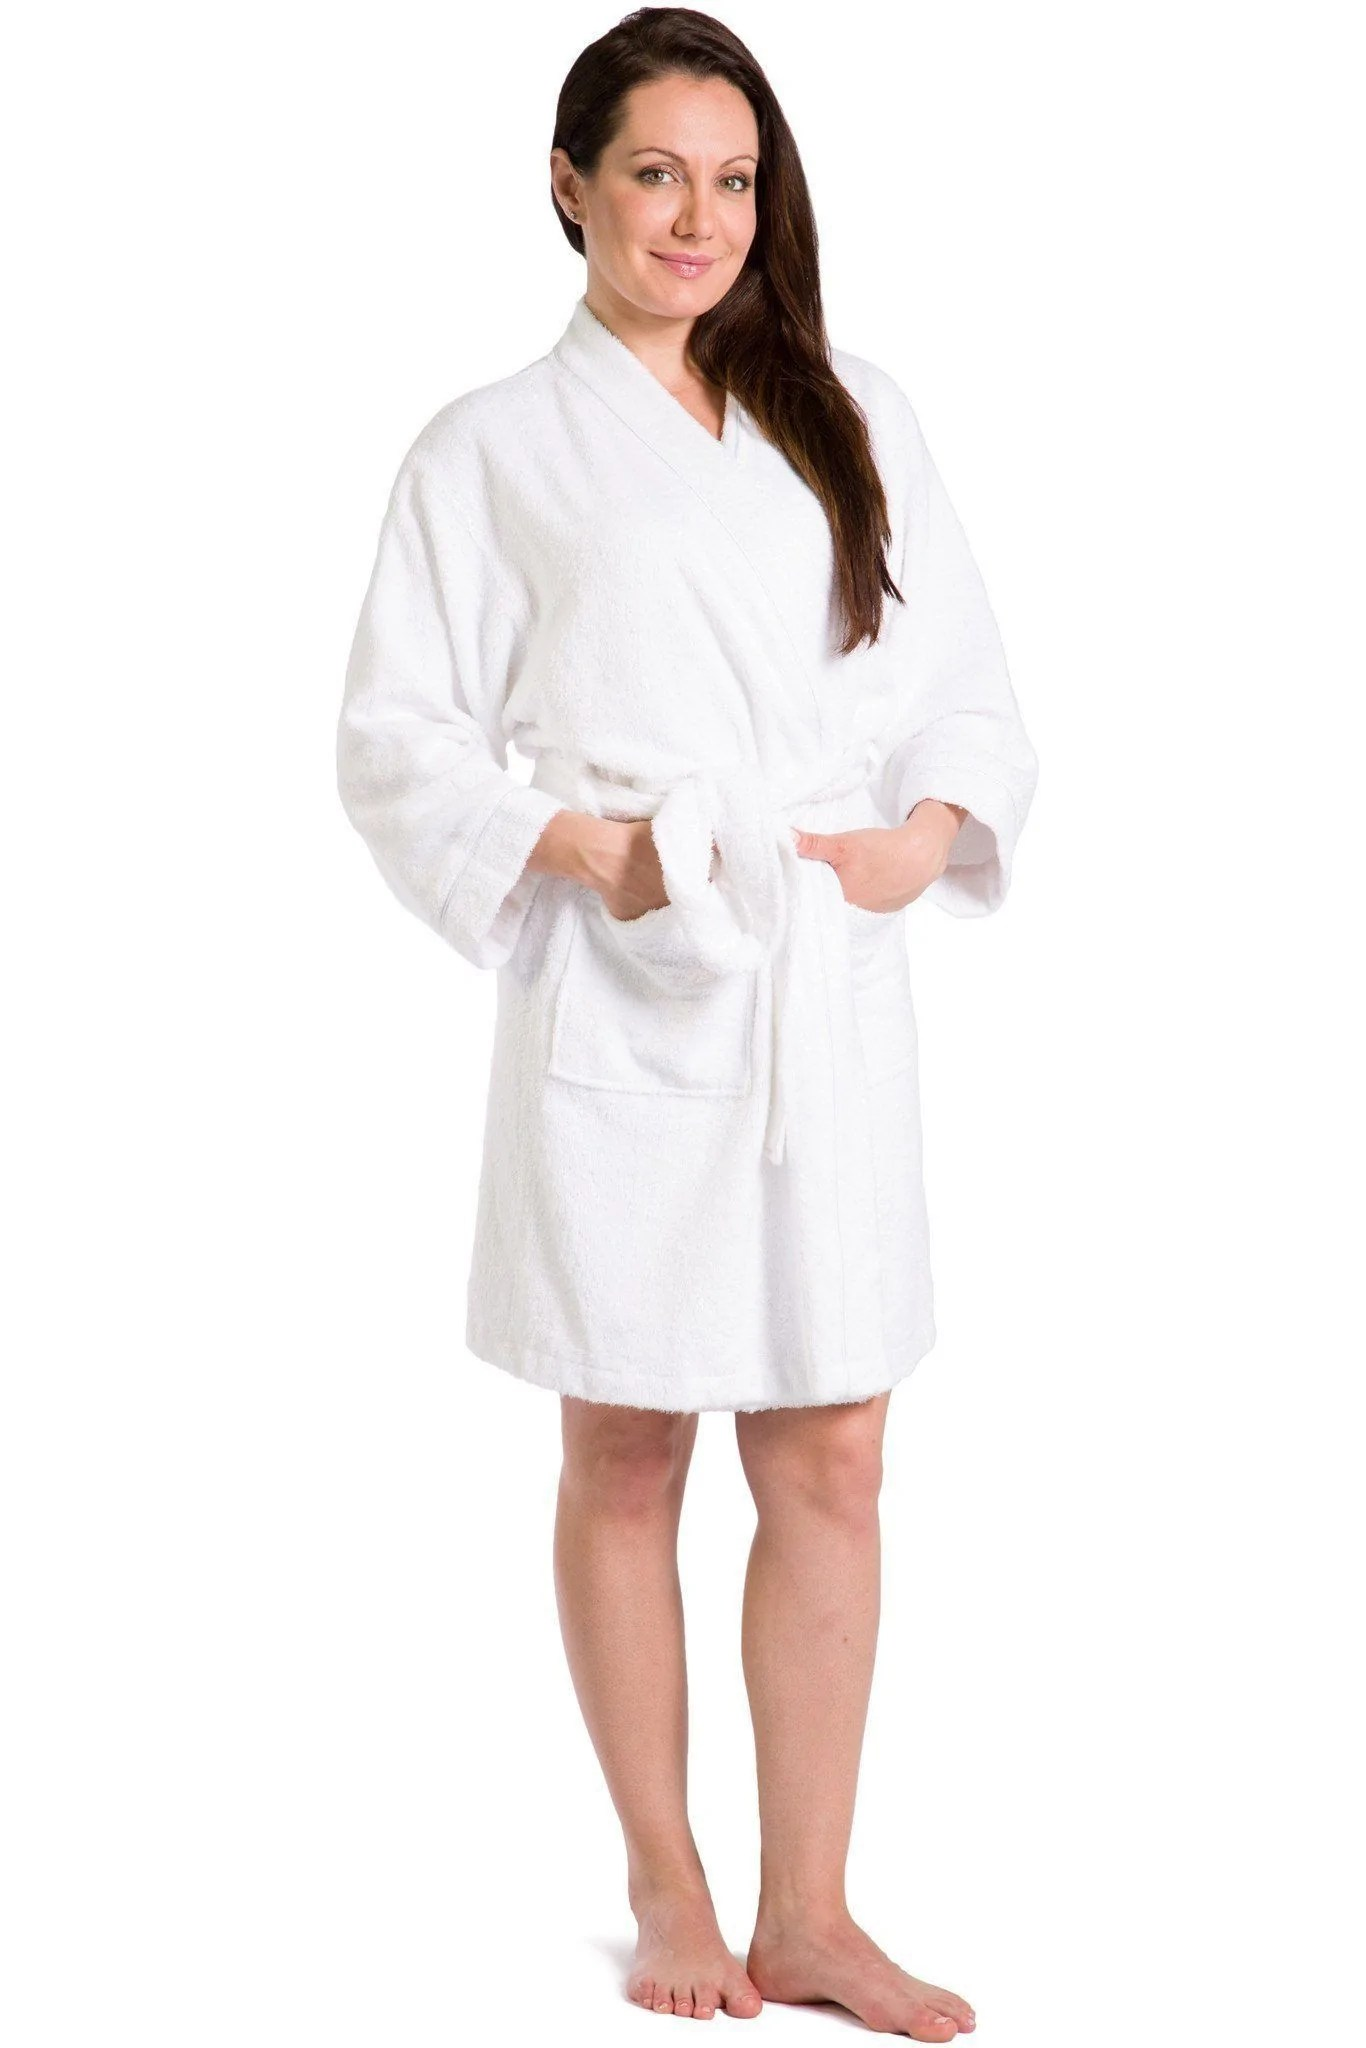 Women' Robes Terry Cloth Kimono Style Short Robe Fishers Finery